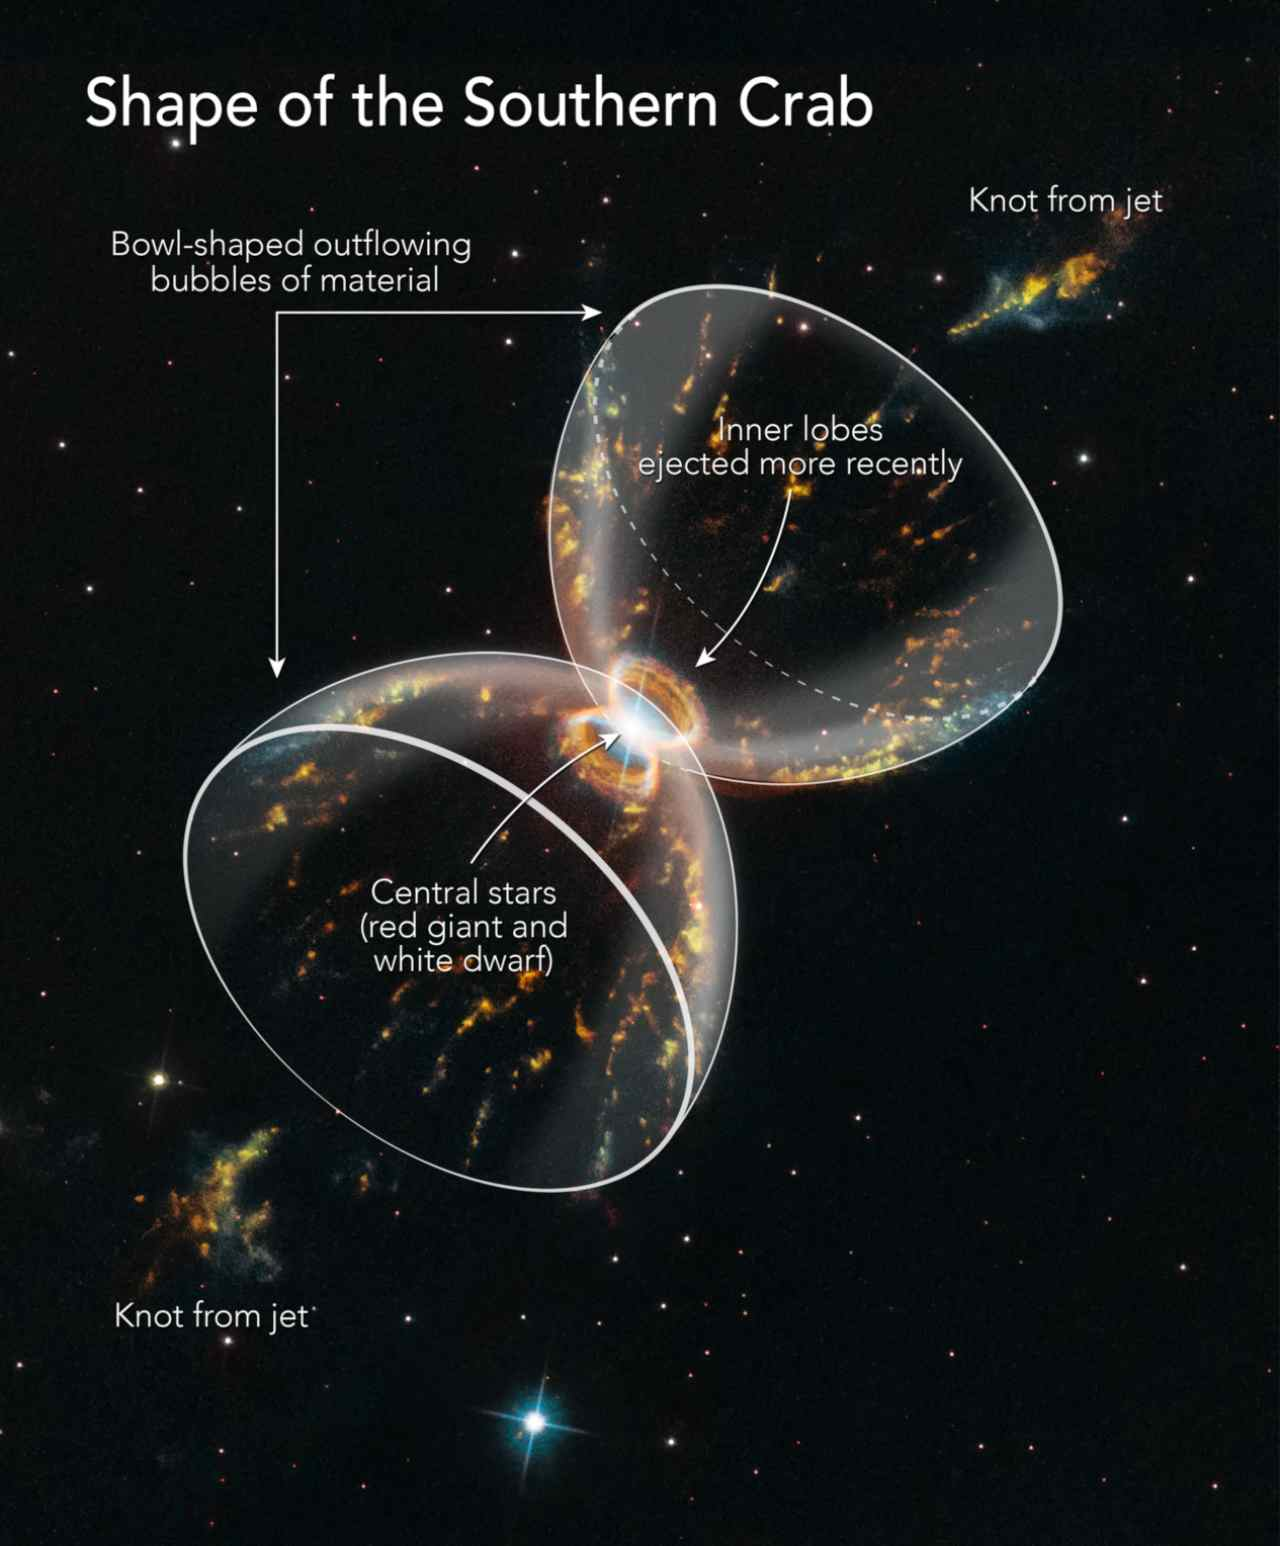 Aspects and shape of the Southern Crab Nebula. Image: NASA/STScI